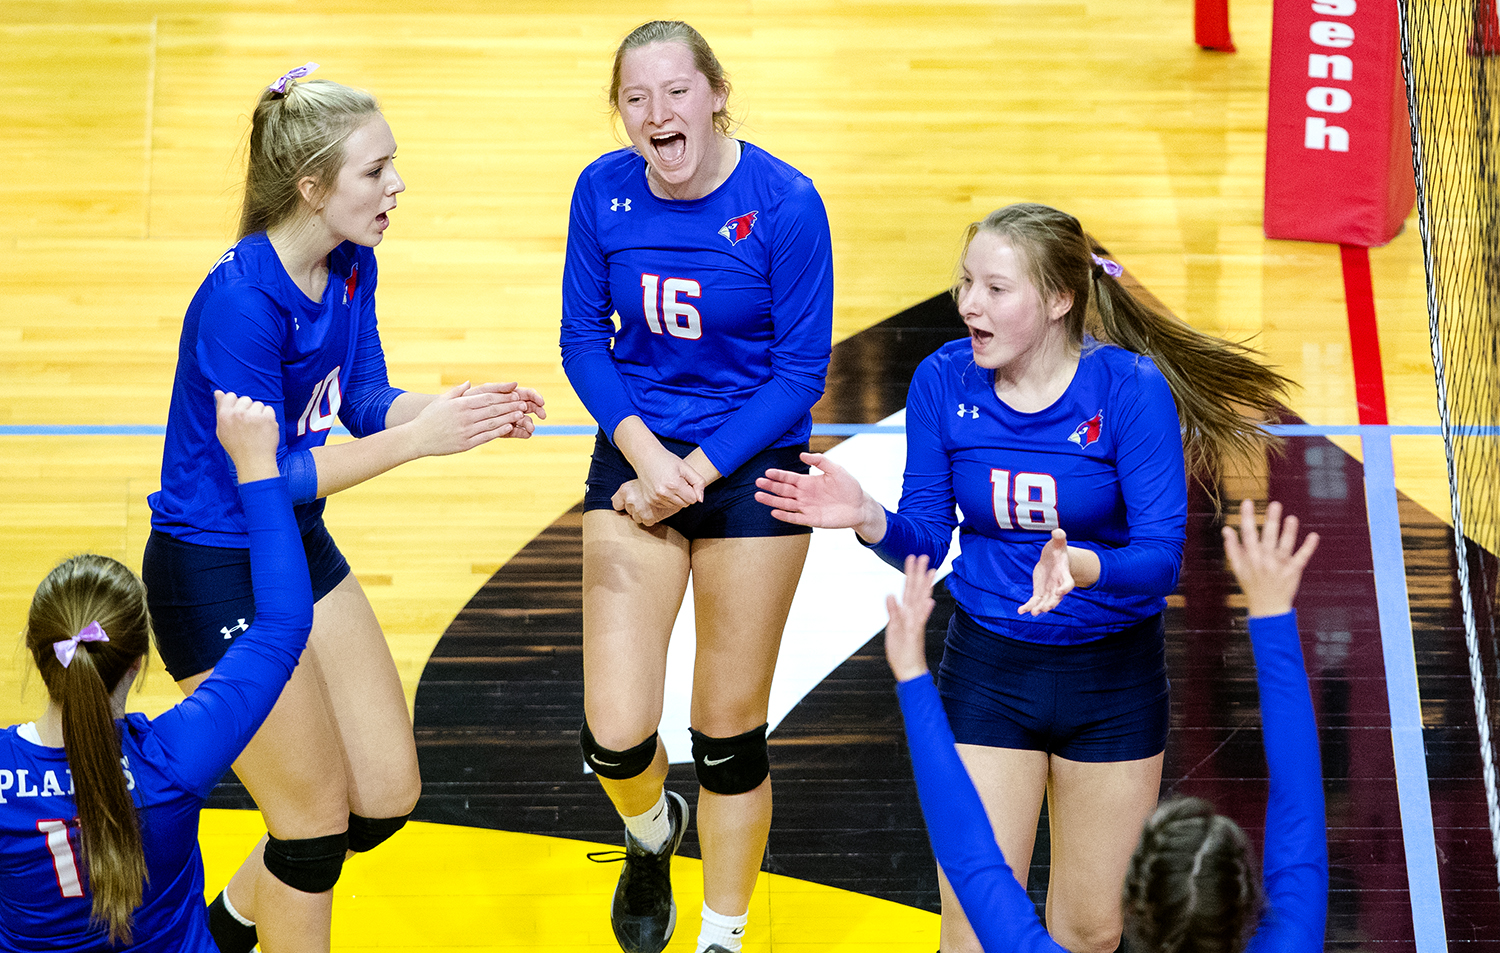 The Cardinals celebrate a point against Galena during the IHSA Class 2A Volleyball championship at Redbird Arena in Normal Saturday, Nov. 10, 2018. [Ted Schurter/The State Journal-Register]